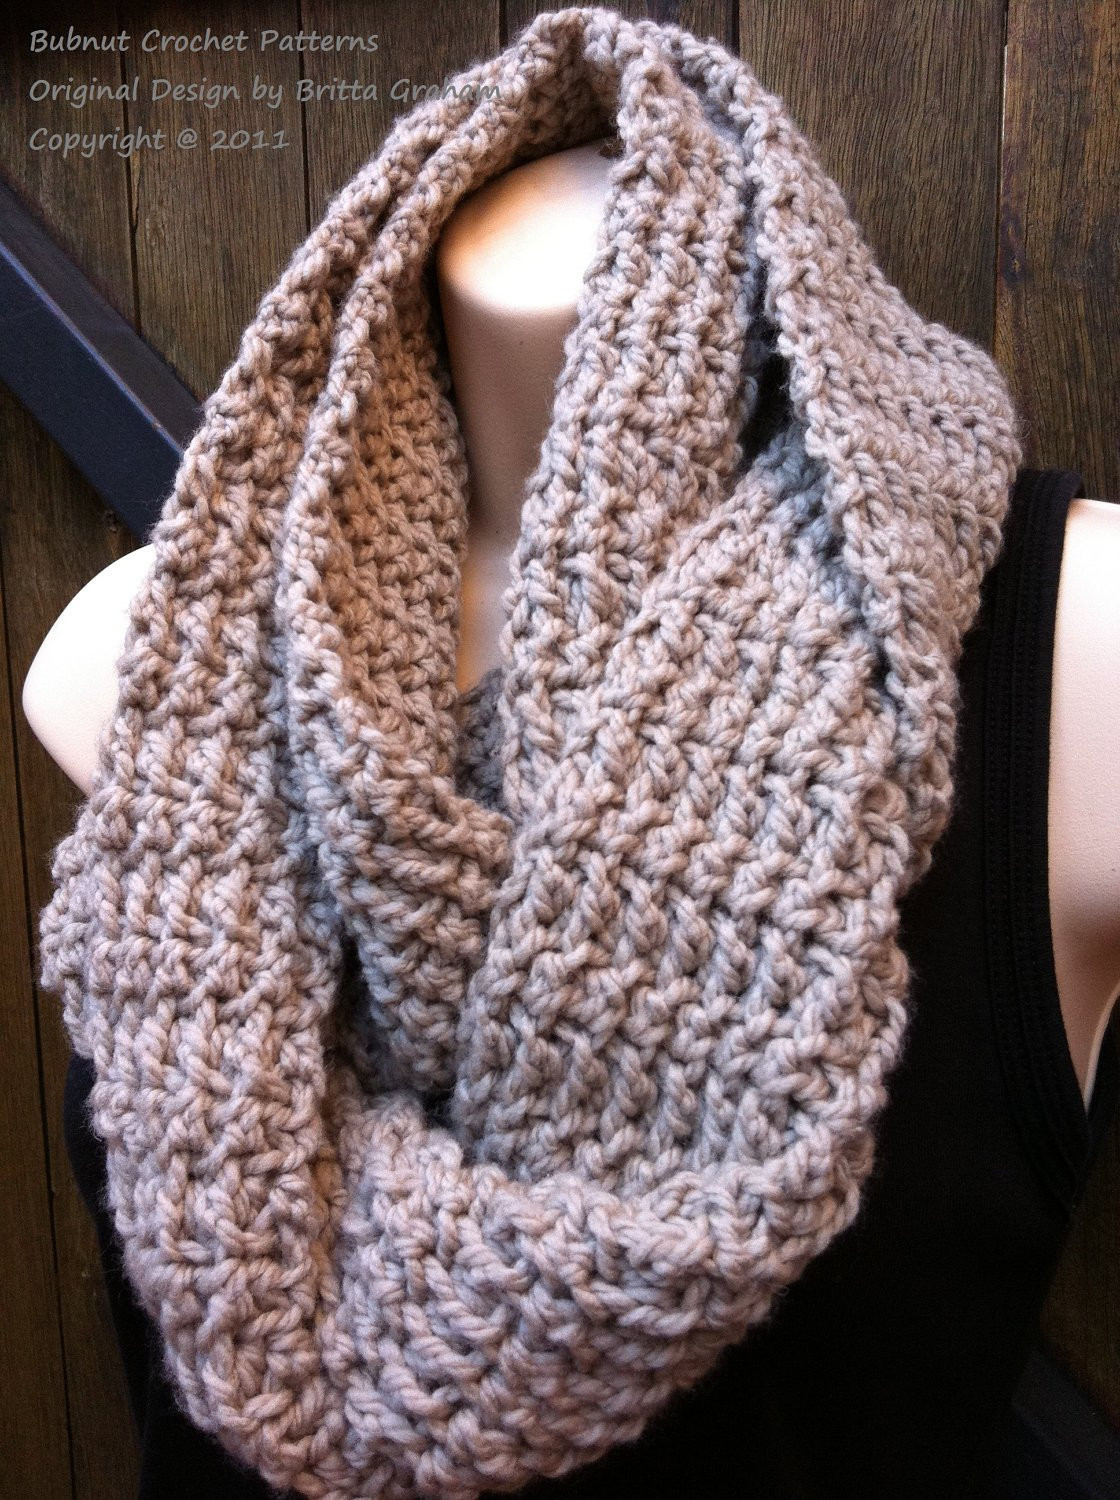 Easy Crochet Scarf Patterns Fresh Scarf Crochet Pattern No 502 Easy Peasy Infinity Cowl Of Attractive 42 Ideas Easy Crochet Scarf Patterns